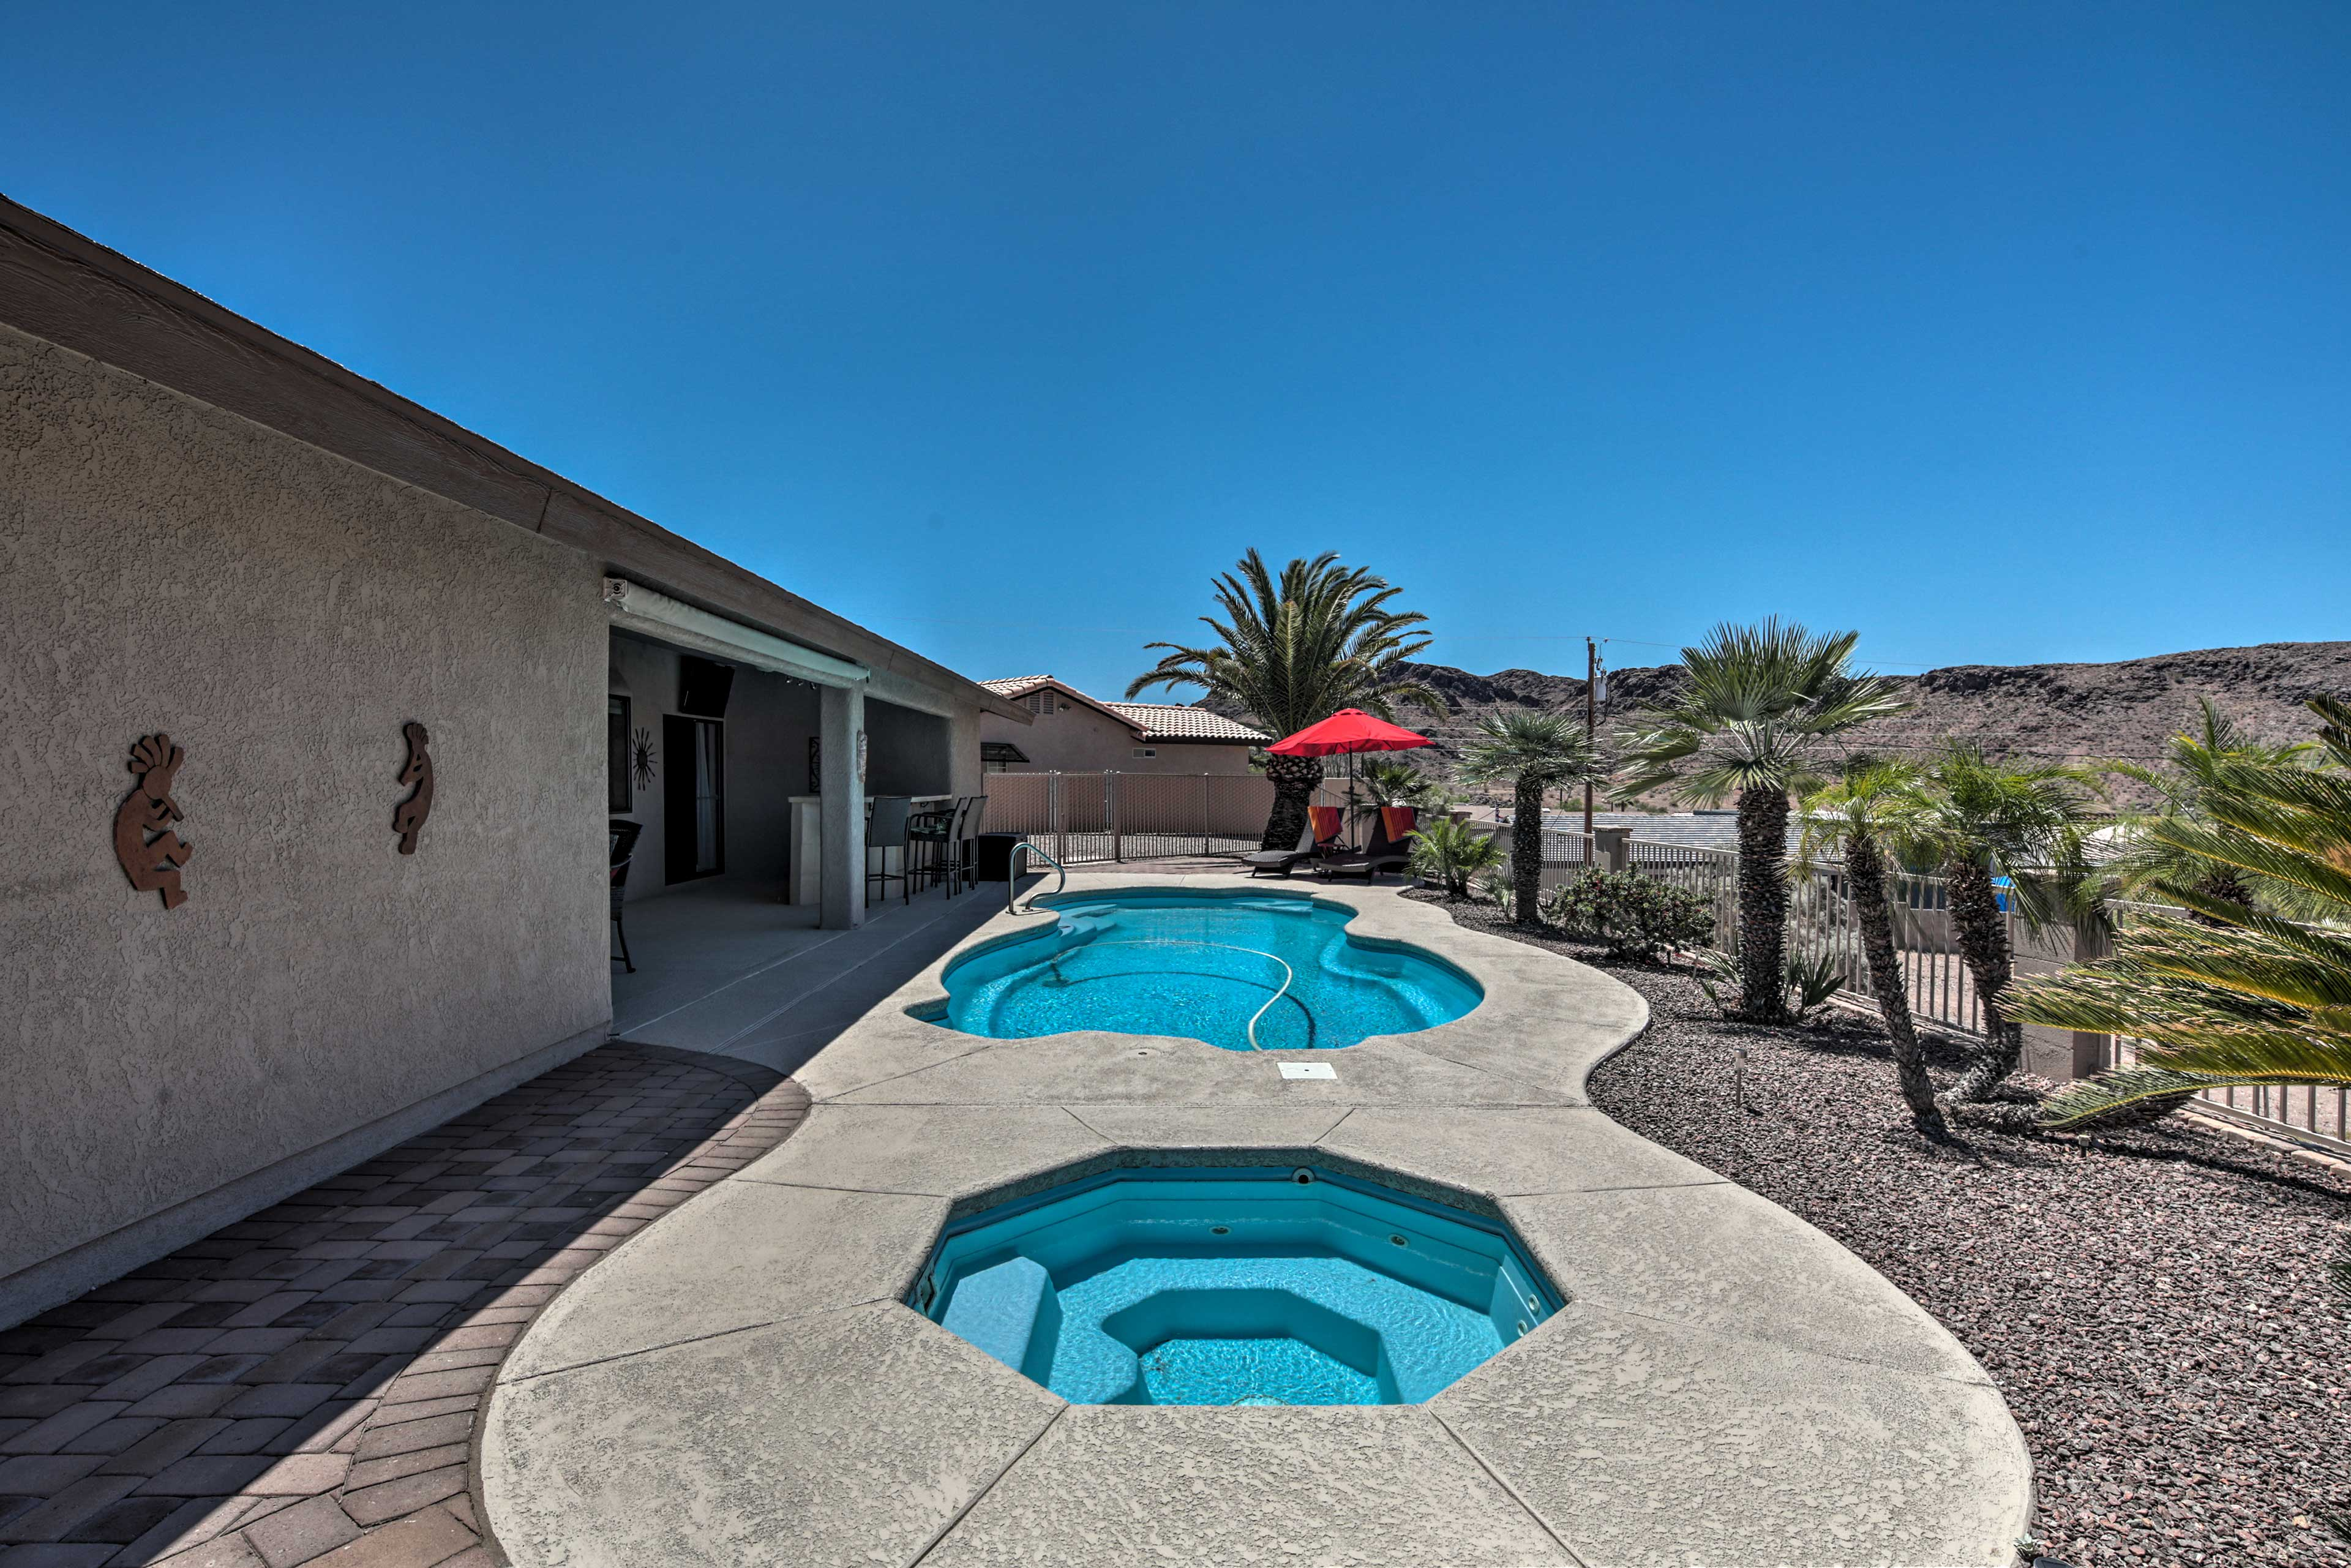 The pool and spa can be heated for optimal comfort.